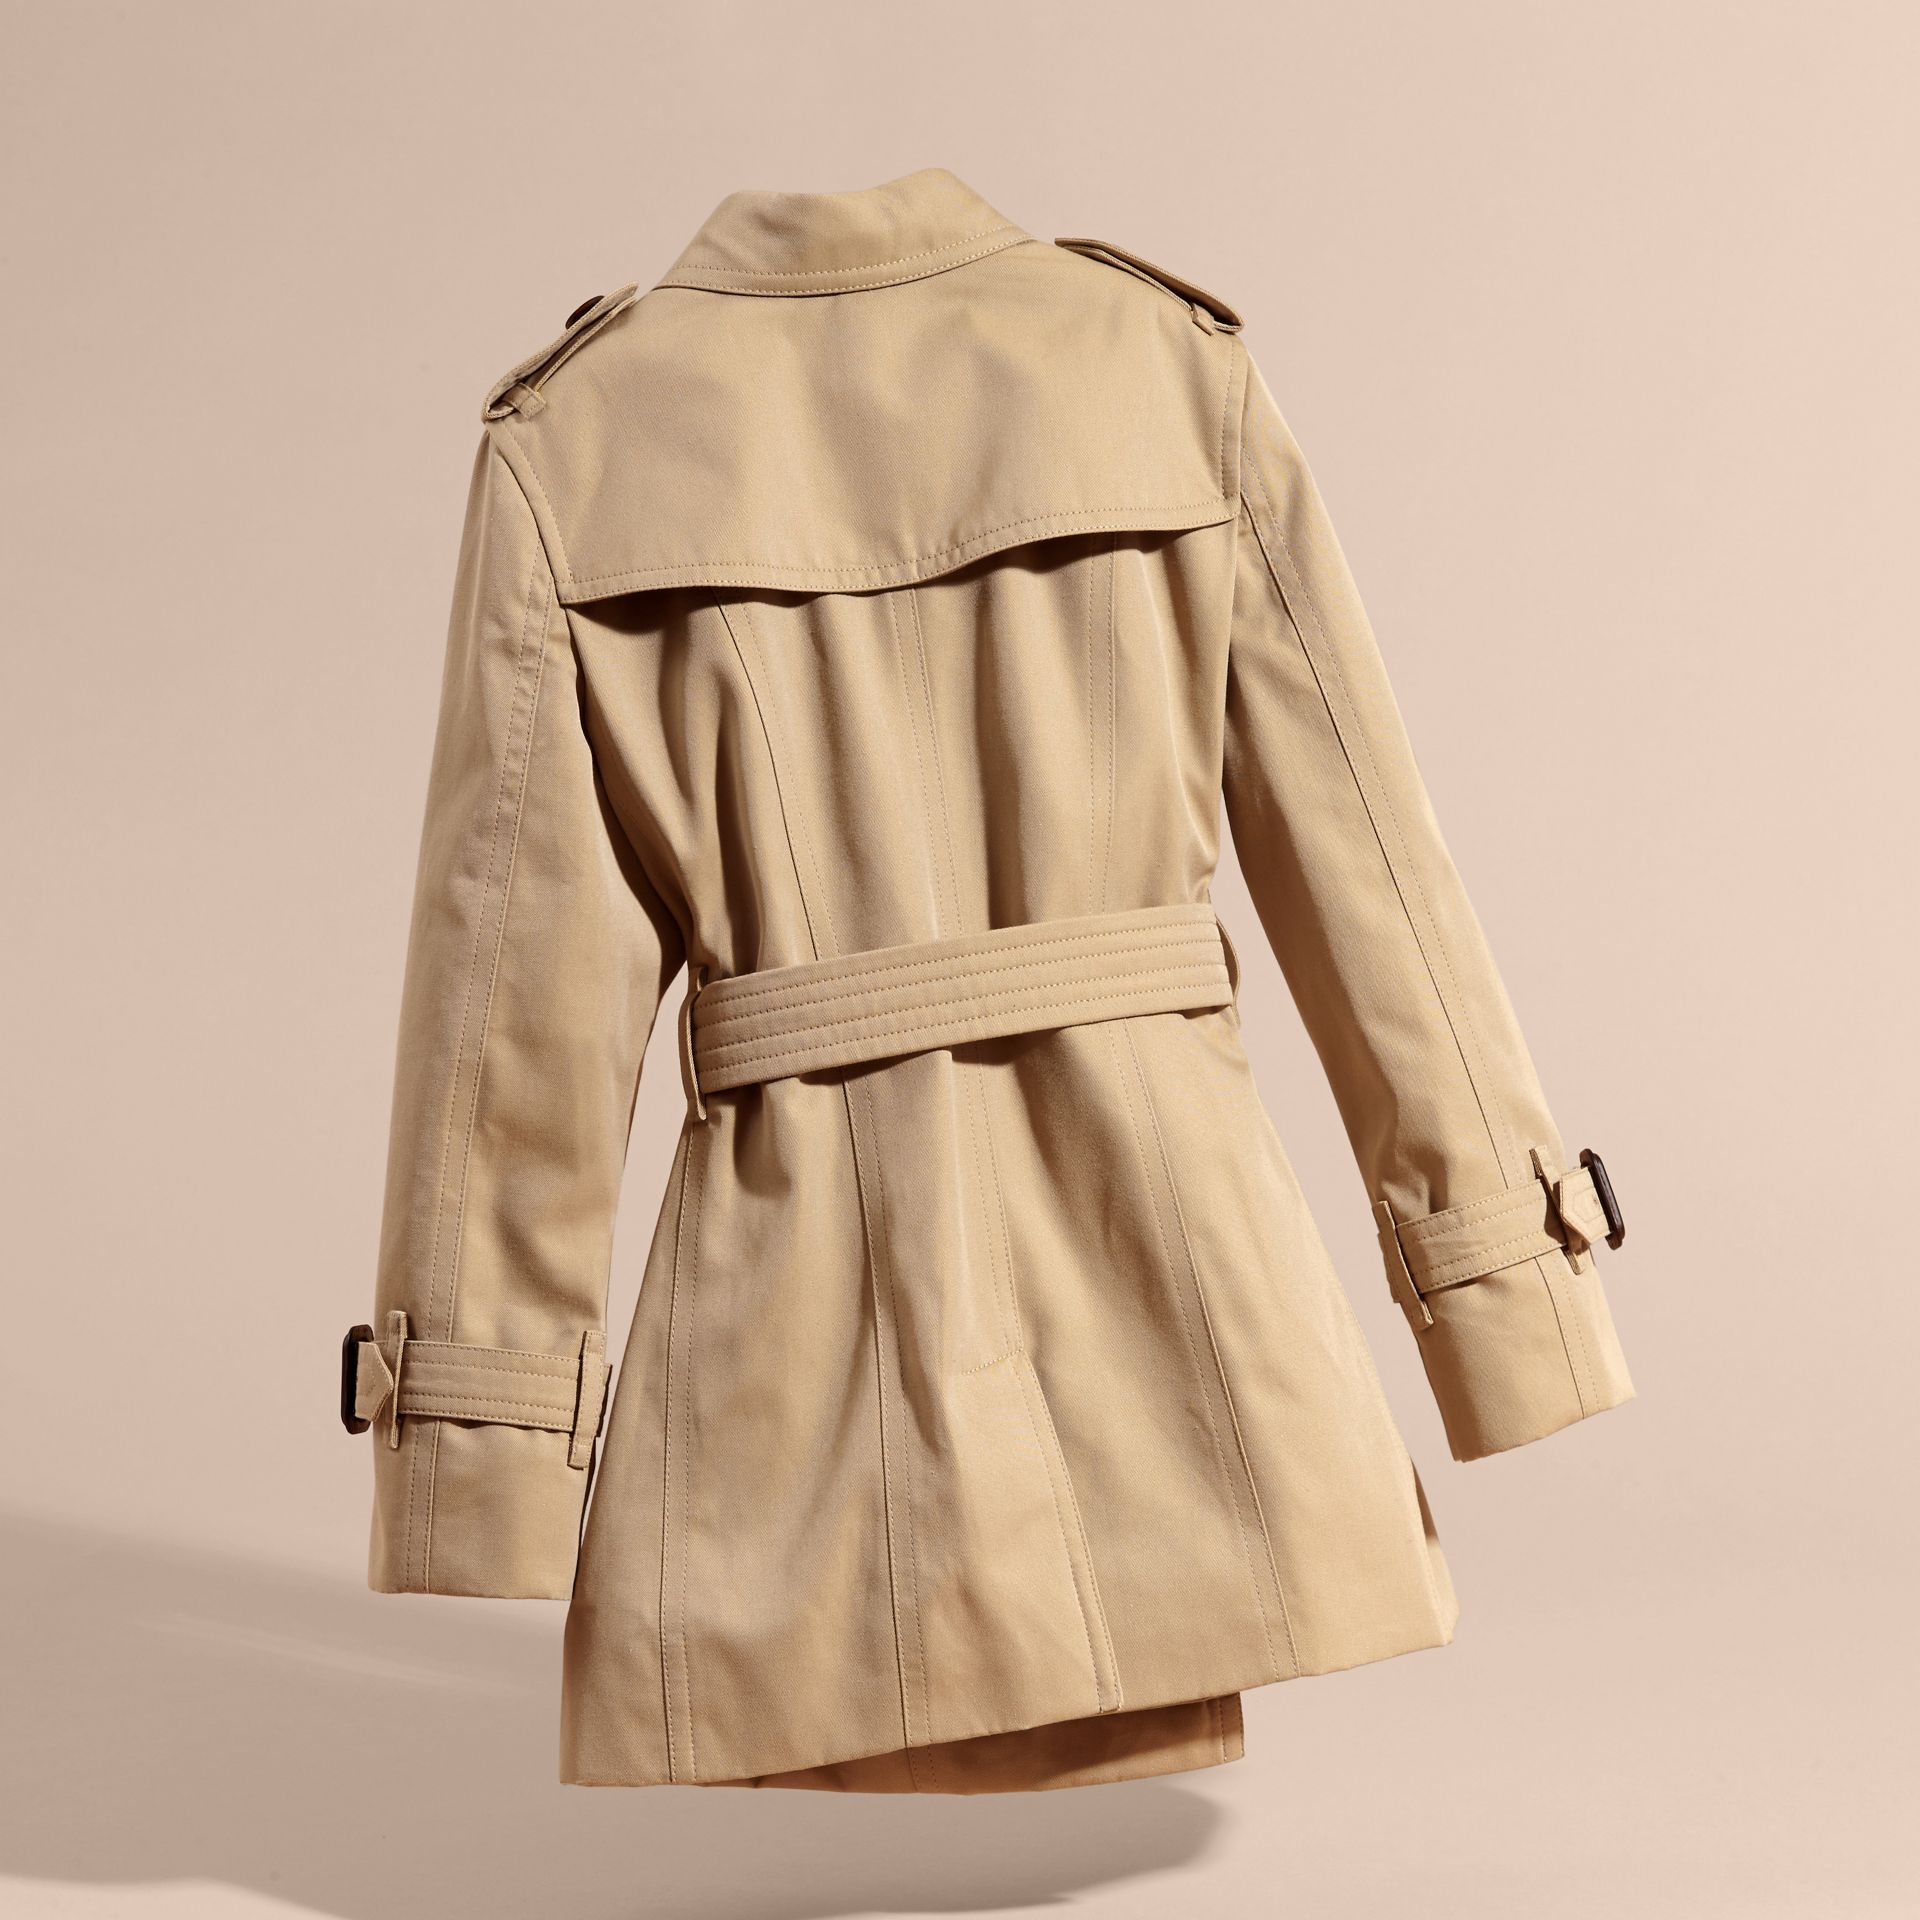 Appliquéd Weather Motif Cotton Trench Coat - gallery image 4